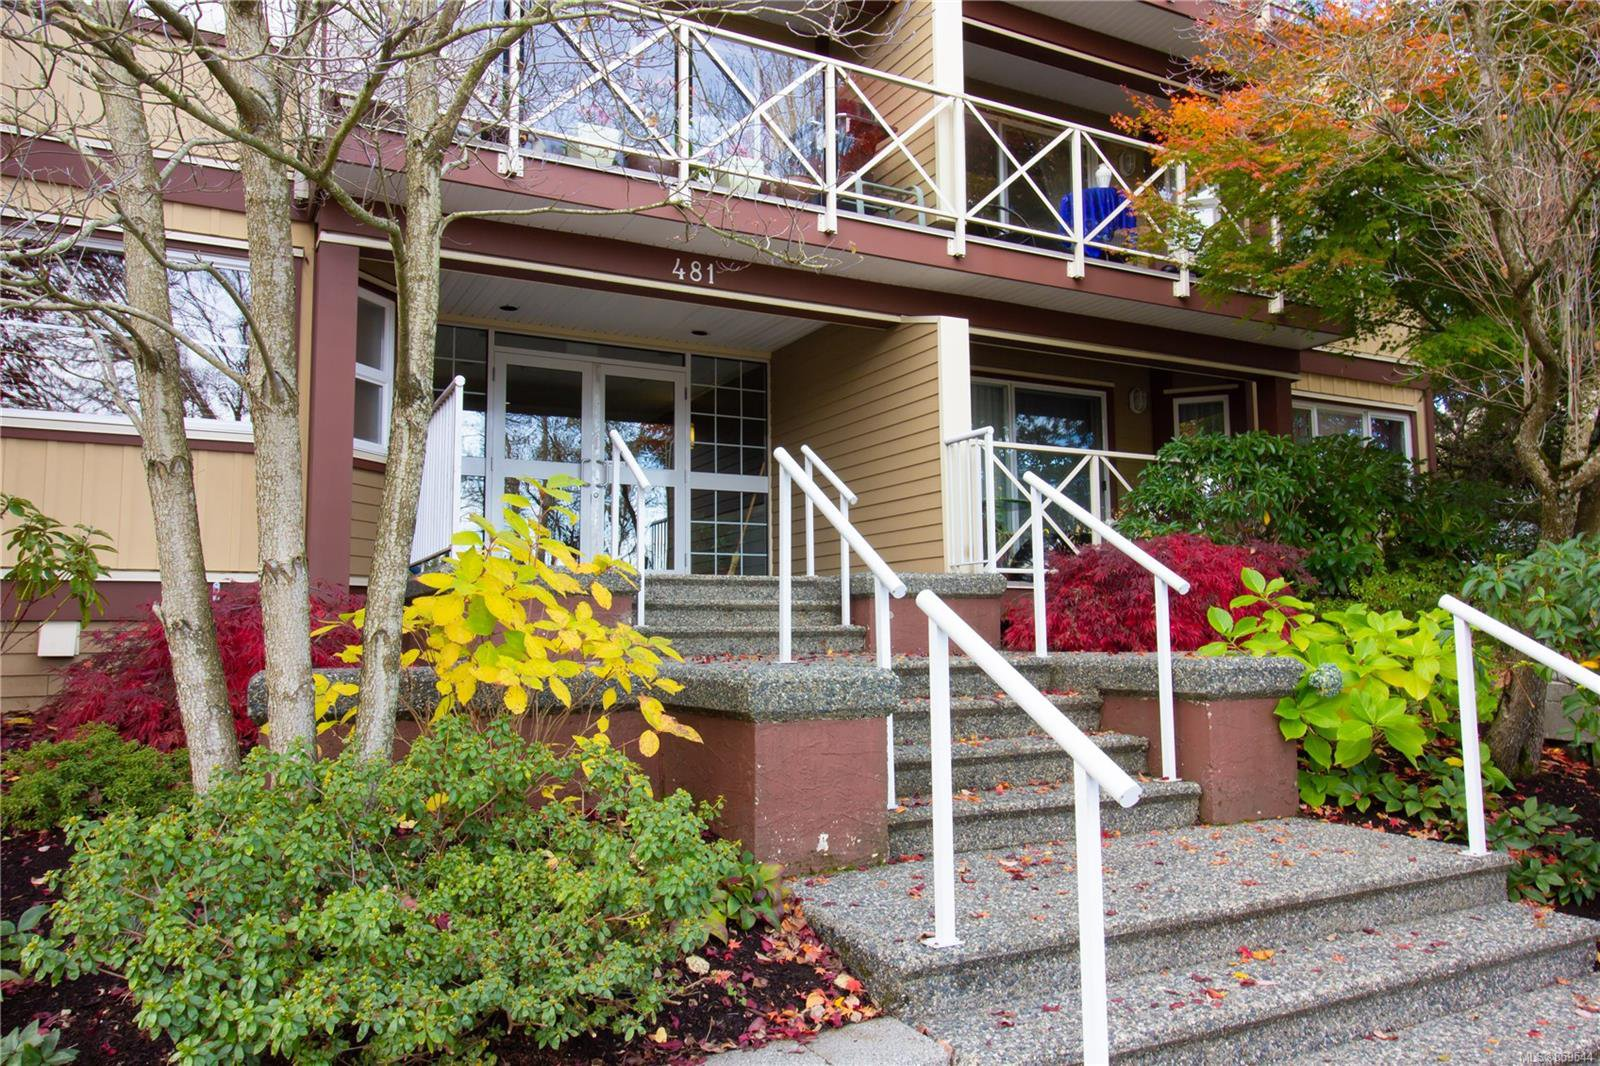 Main Photo: 403 481 Kennedy St in : Na Old City Condo for sale (Nanaimo)  : MLS®# 859544